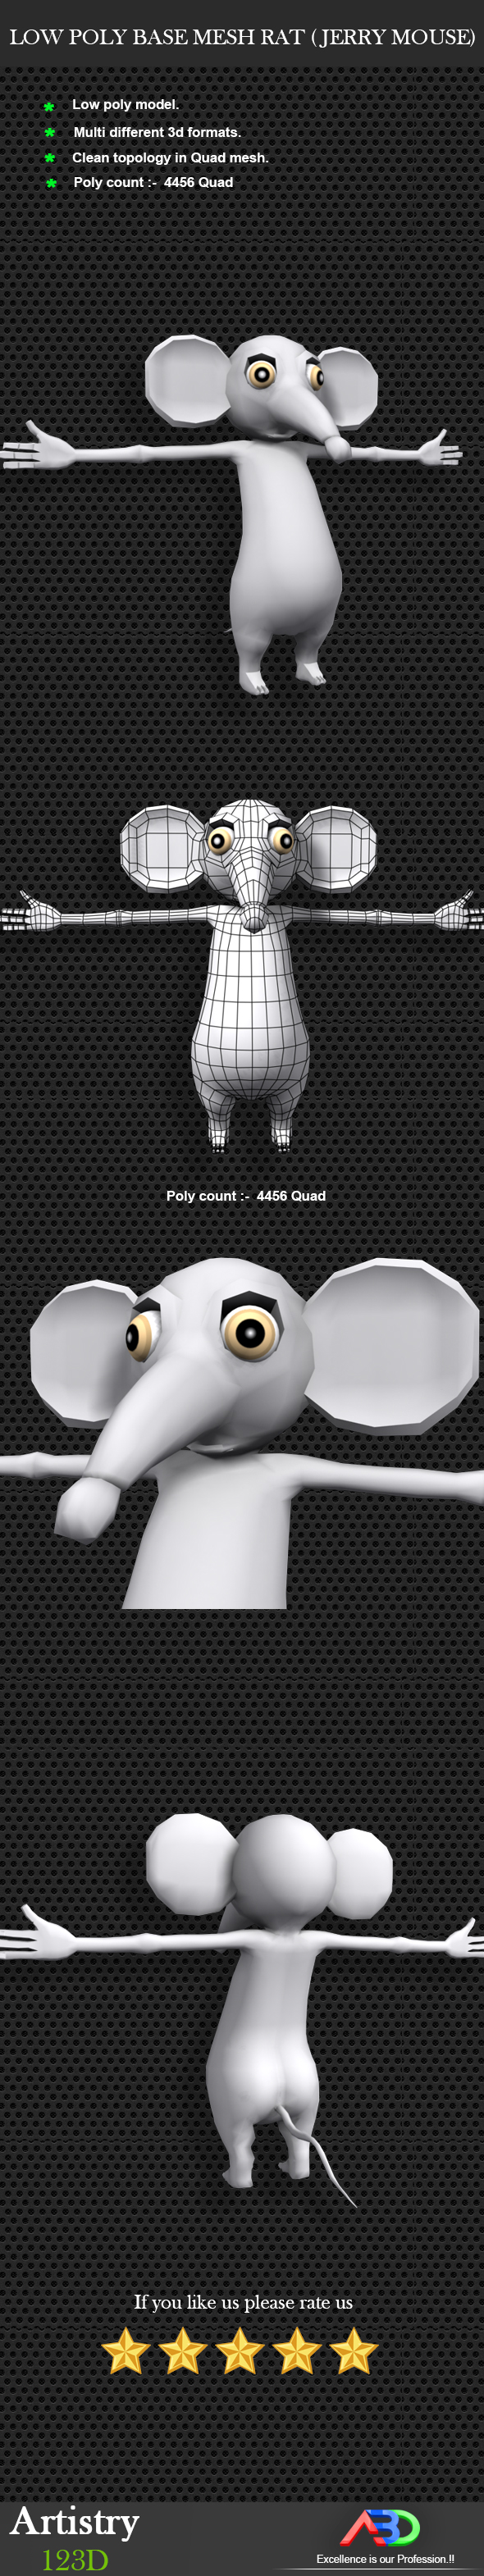 3DOcean Low Poly Base Mesh RAT Jerry mouse 19346790